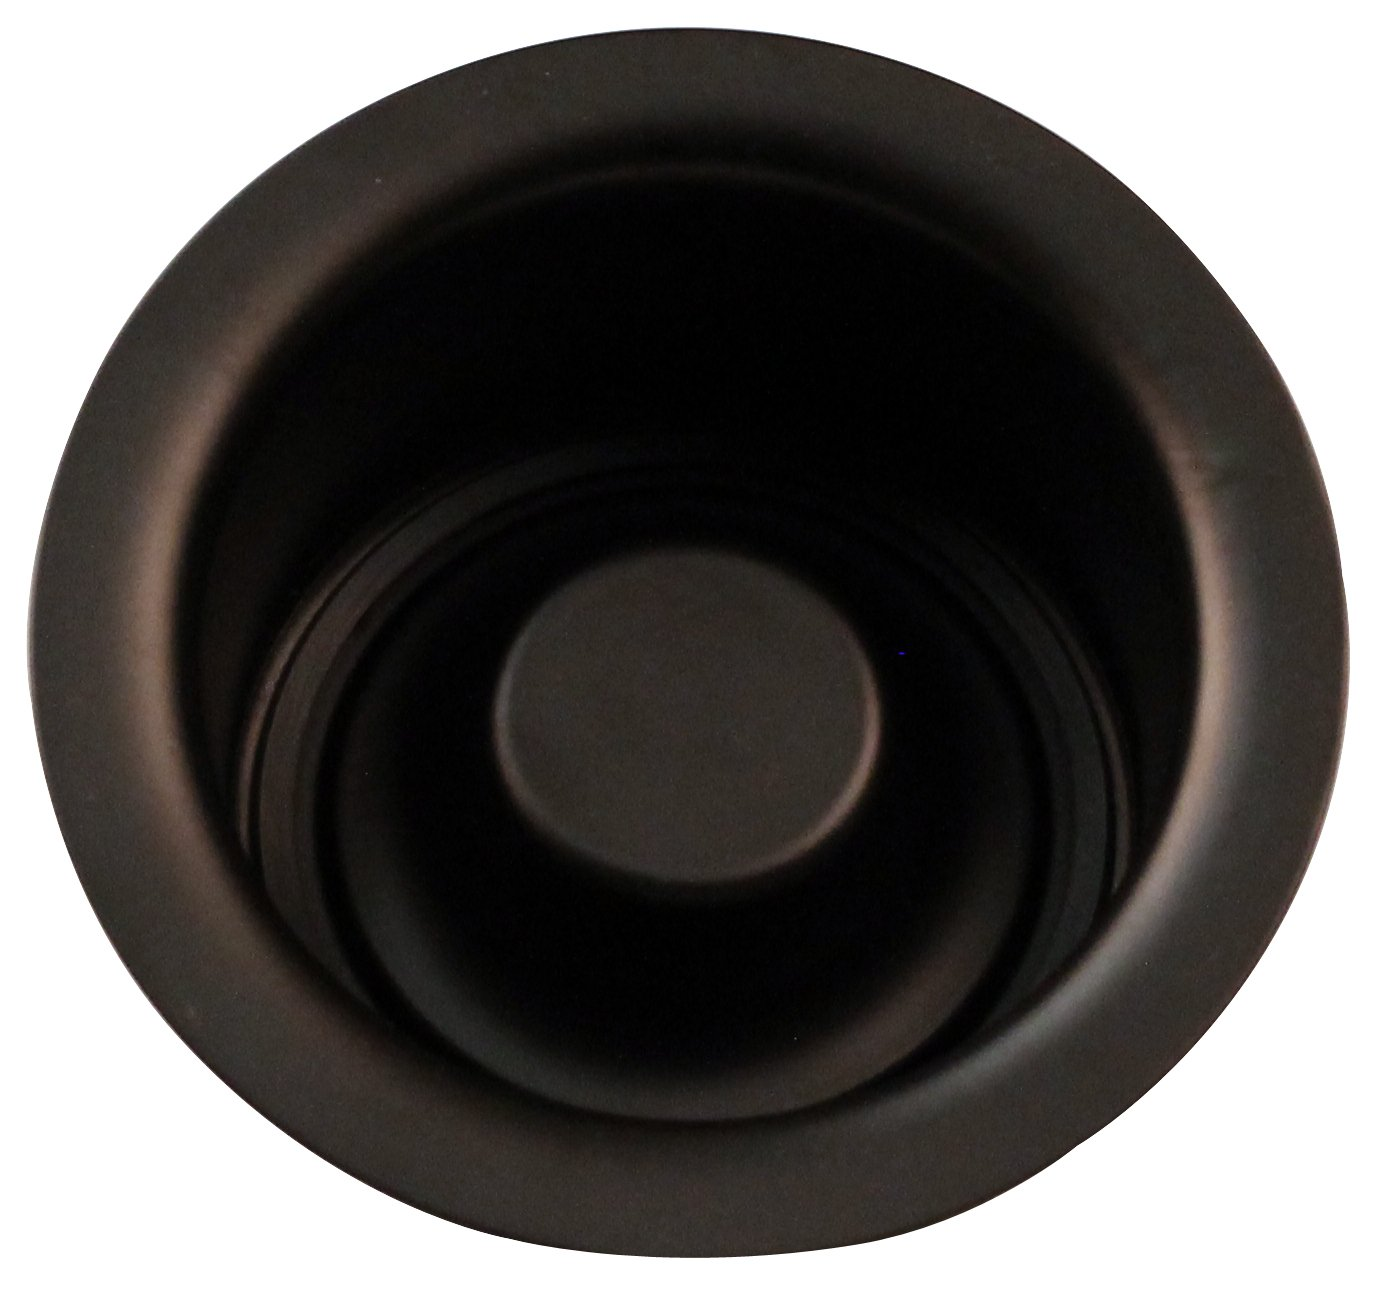 Westbrass InSinkErator Style Extra-Deep Disposal Flange & Stopper, Oil Rubbed Bronze, D2082-12 by Westbrass